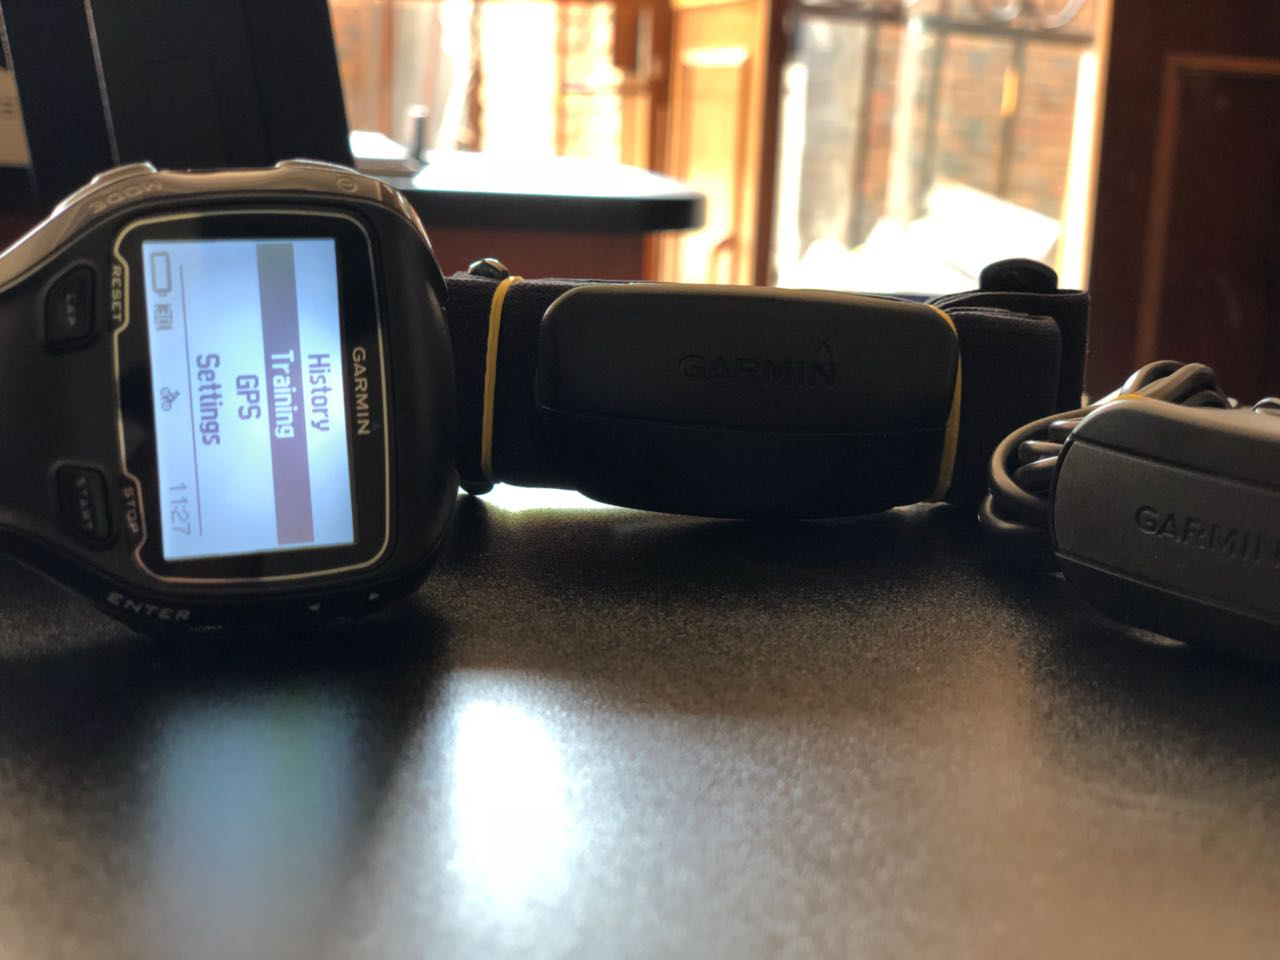 Like New Garmin Forerunner 910XT Watch with HR Monitor & Charger Included Sale..